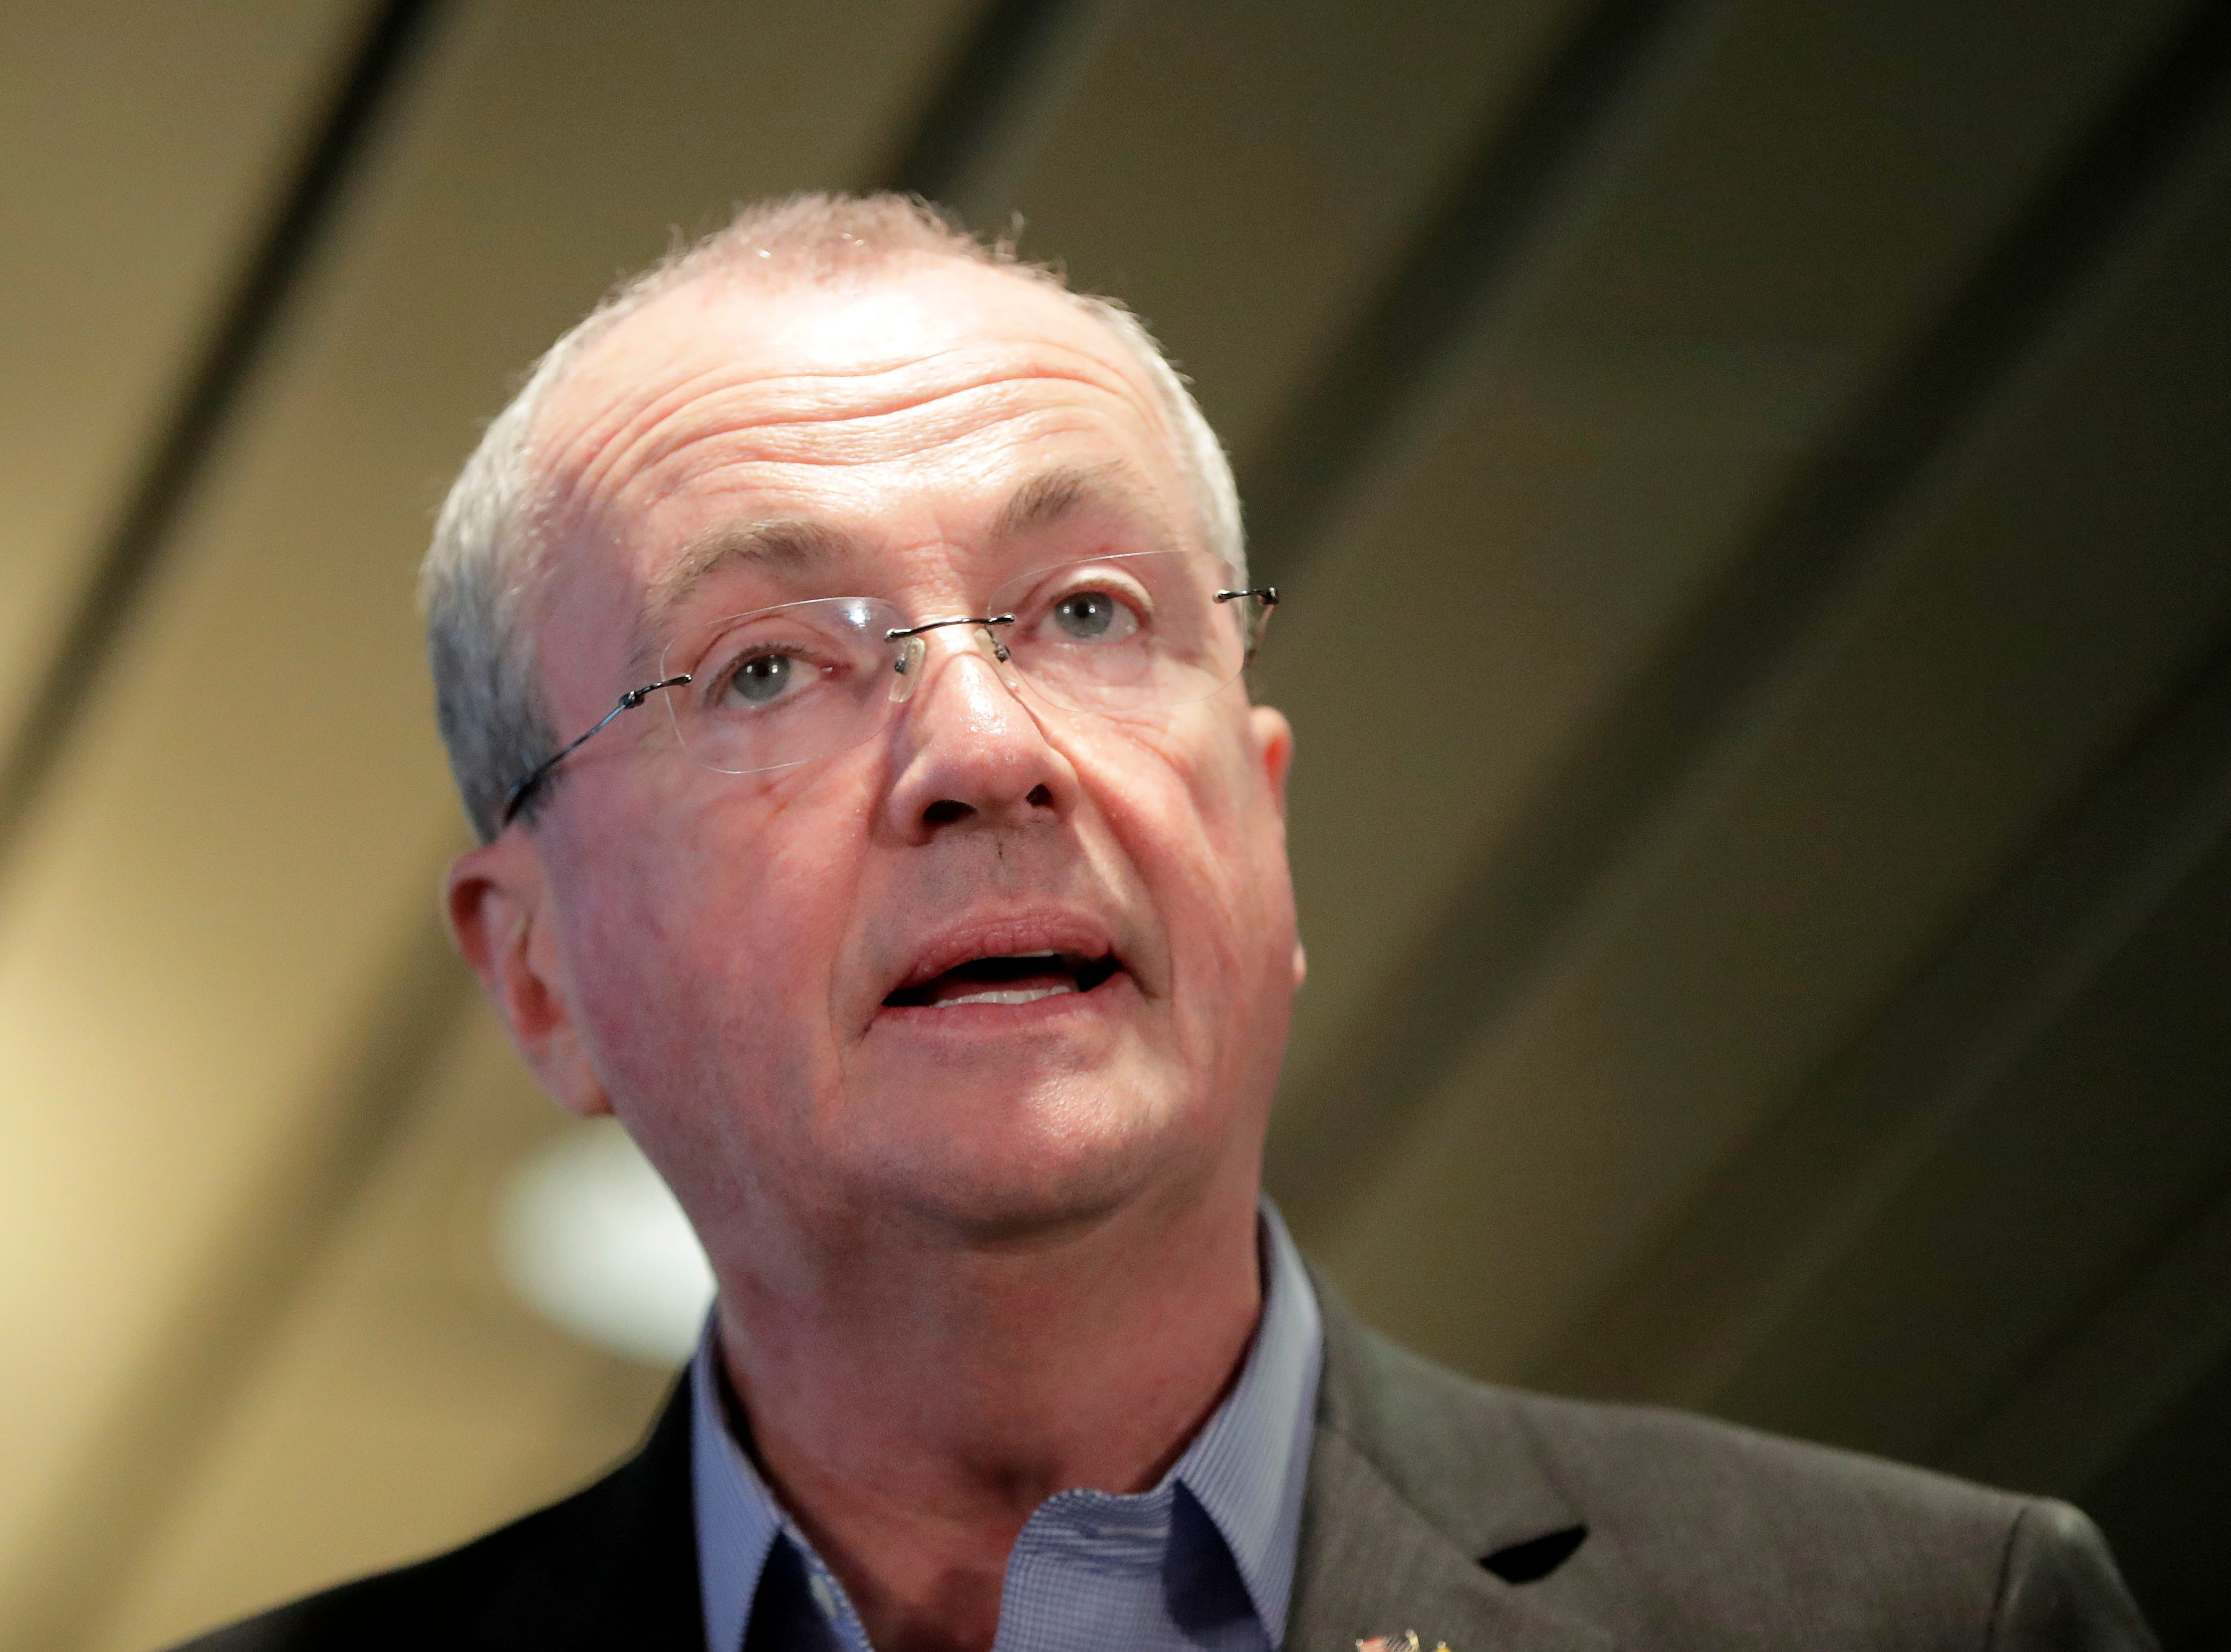 Phil Murphy blames poor storm response on forecast, commuters leaving early